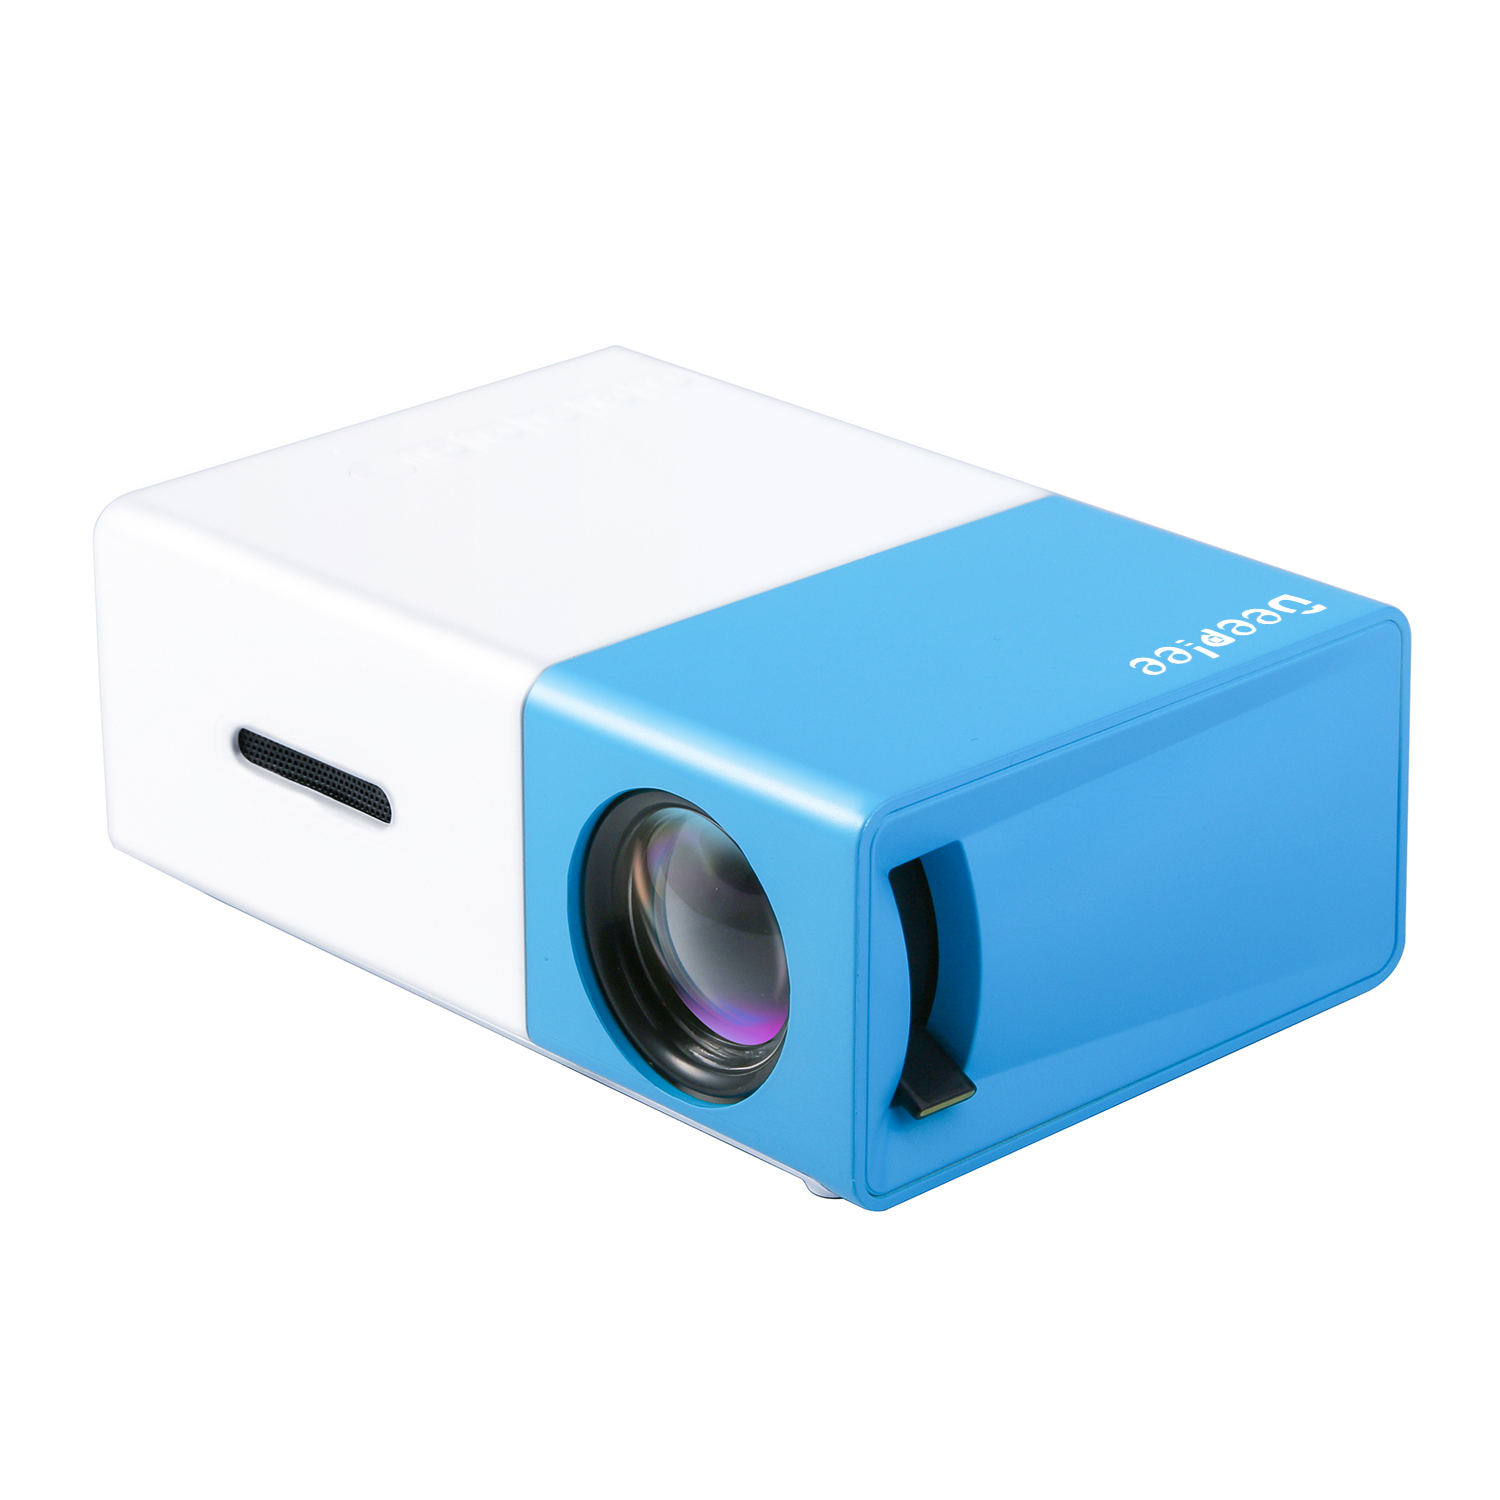 Deeplee dp300 mini projector portable led projector home for Small projector for laptop